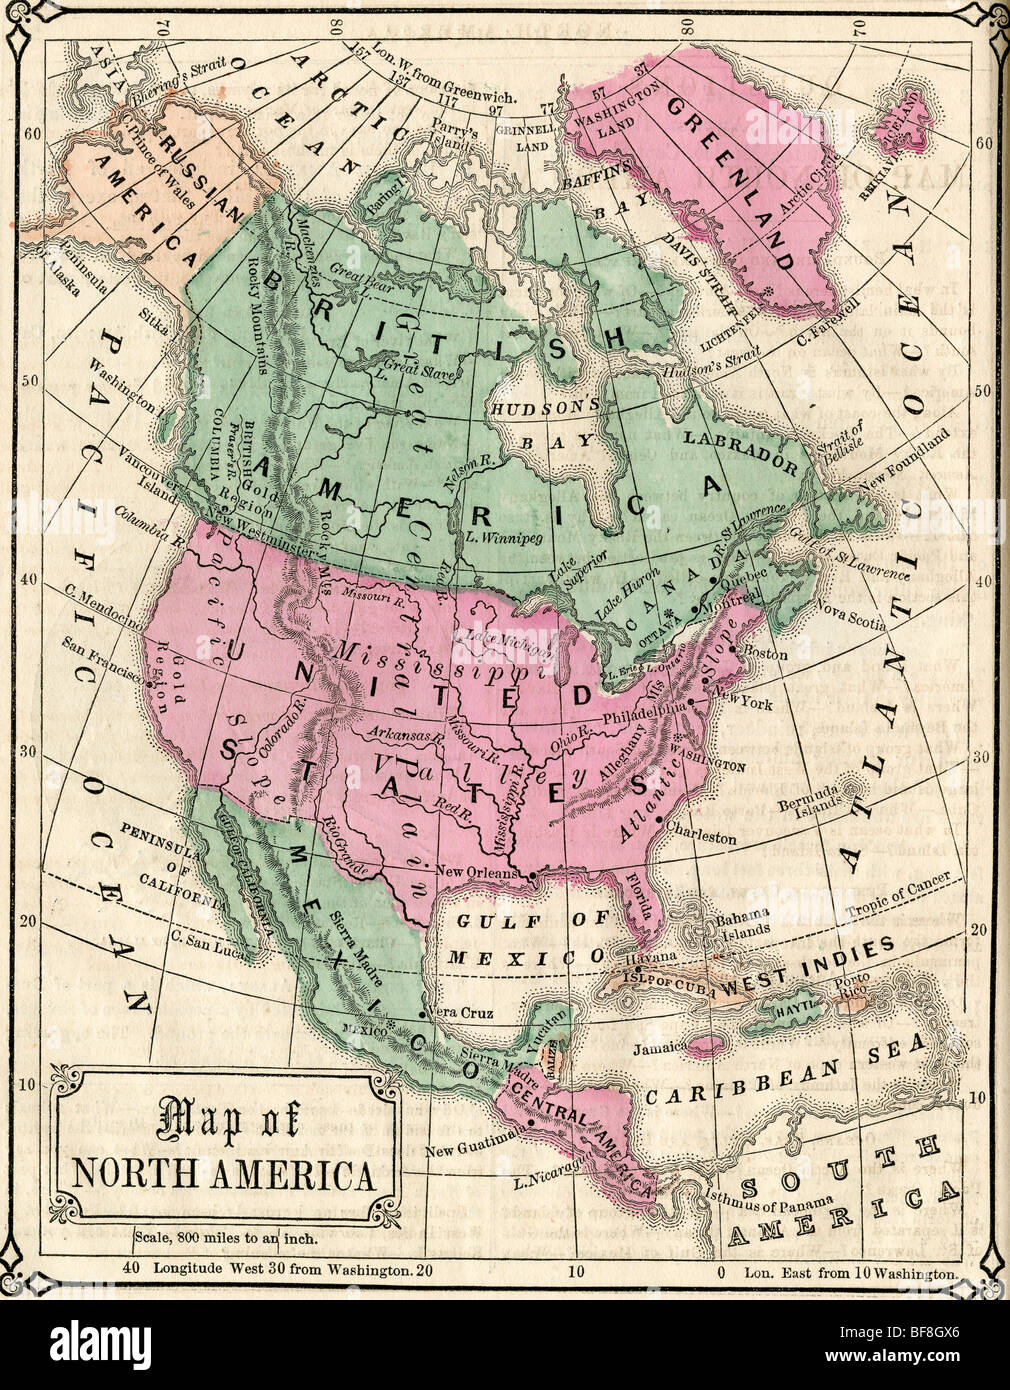 Old North America Map.Original Old Map Of North America From 1865 Geography Textbook Stock